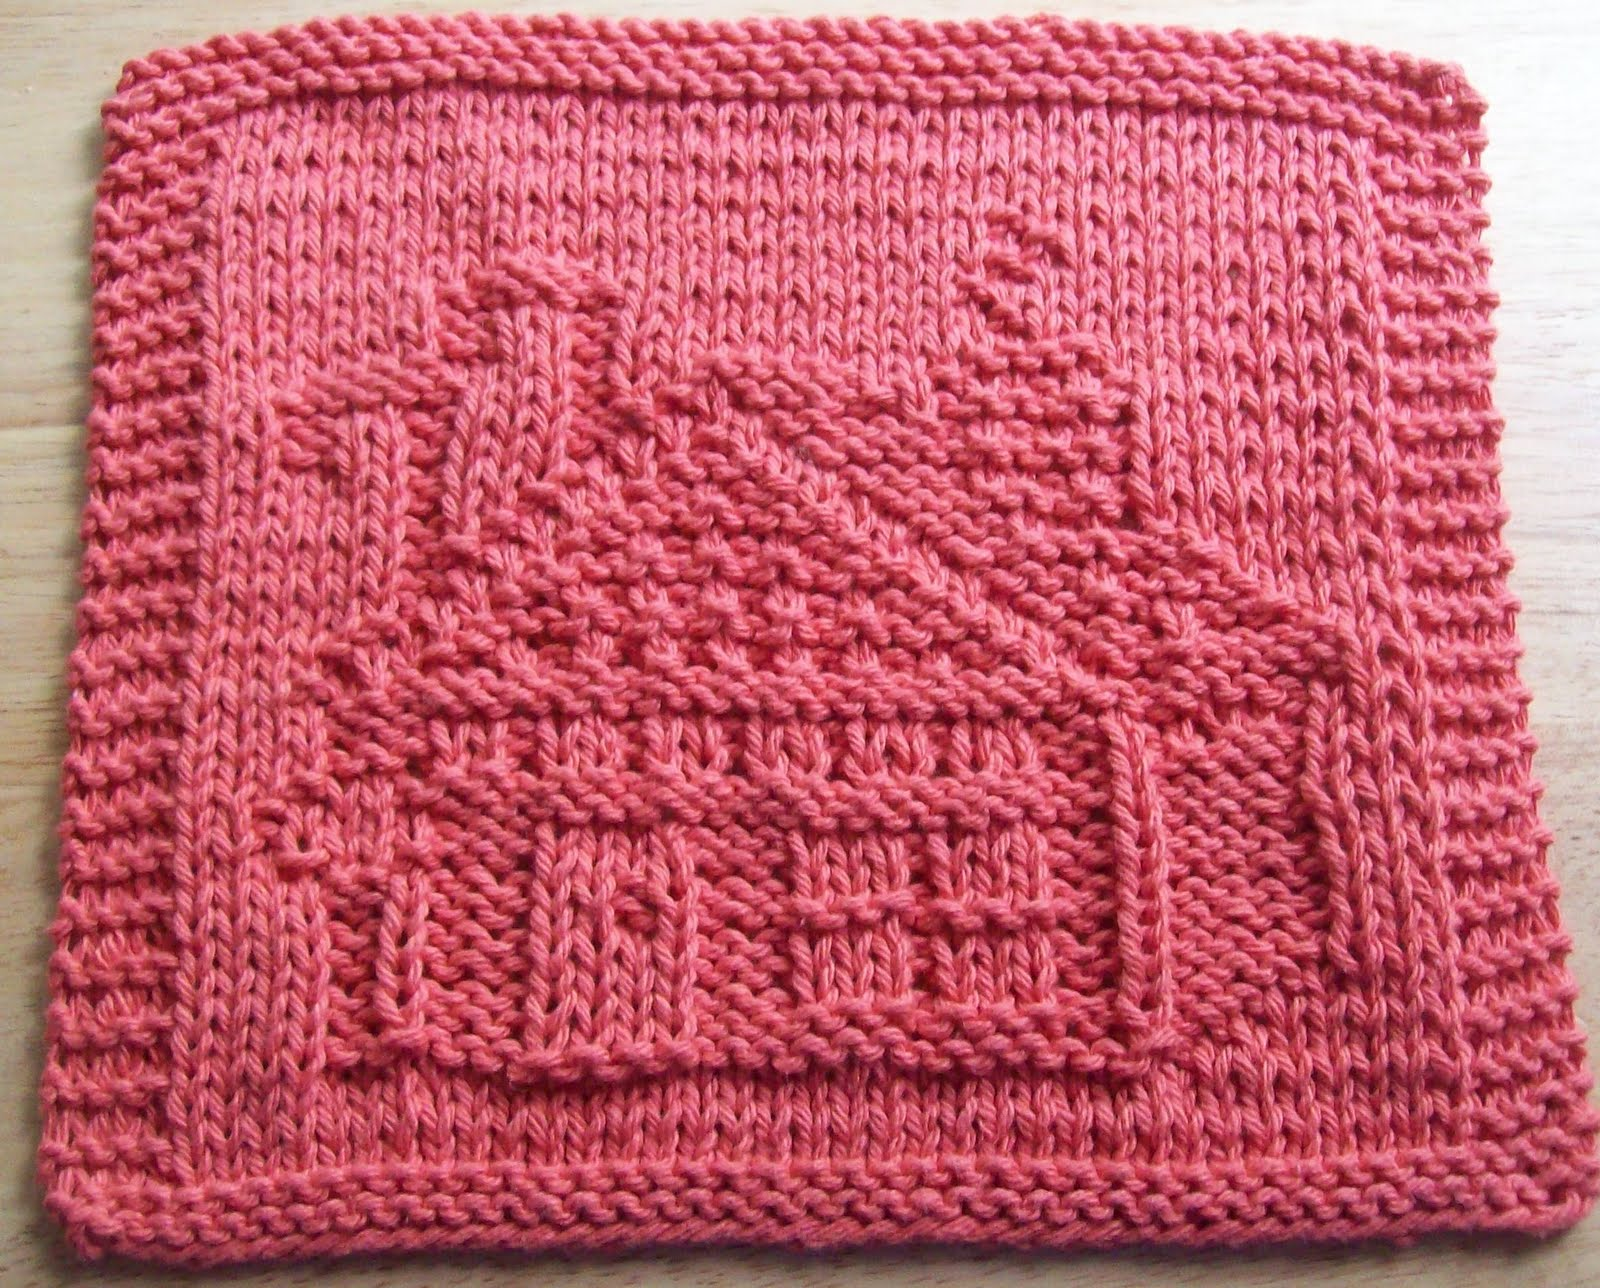 DigKnitty Designs: Gingerbread House Too Knit Dishcloth Pattern